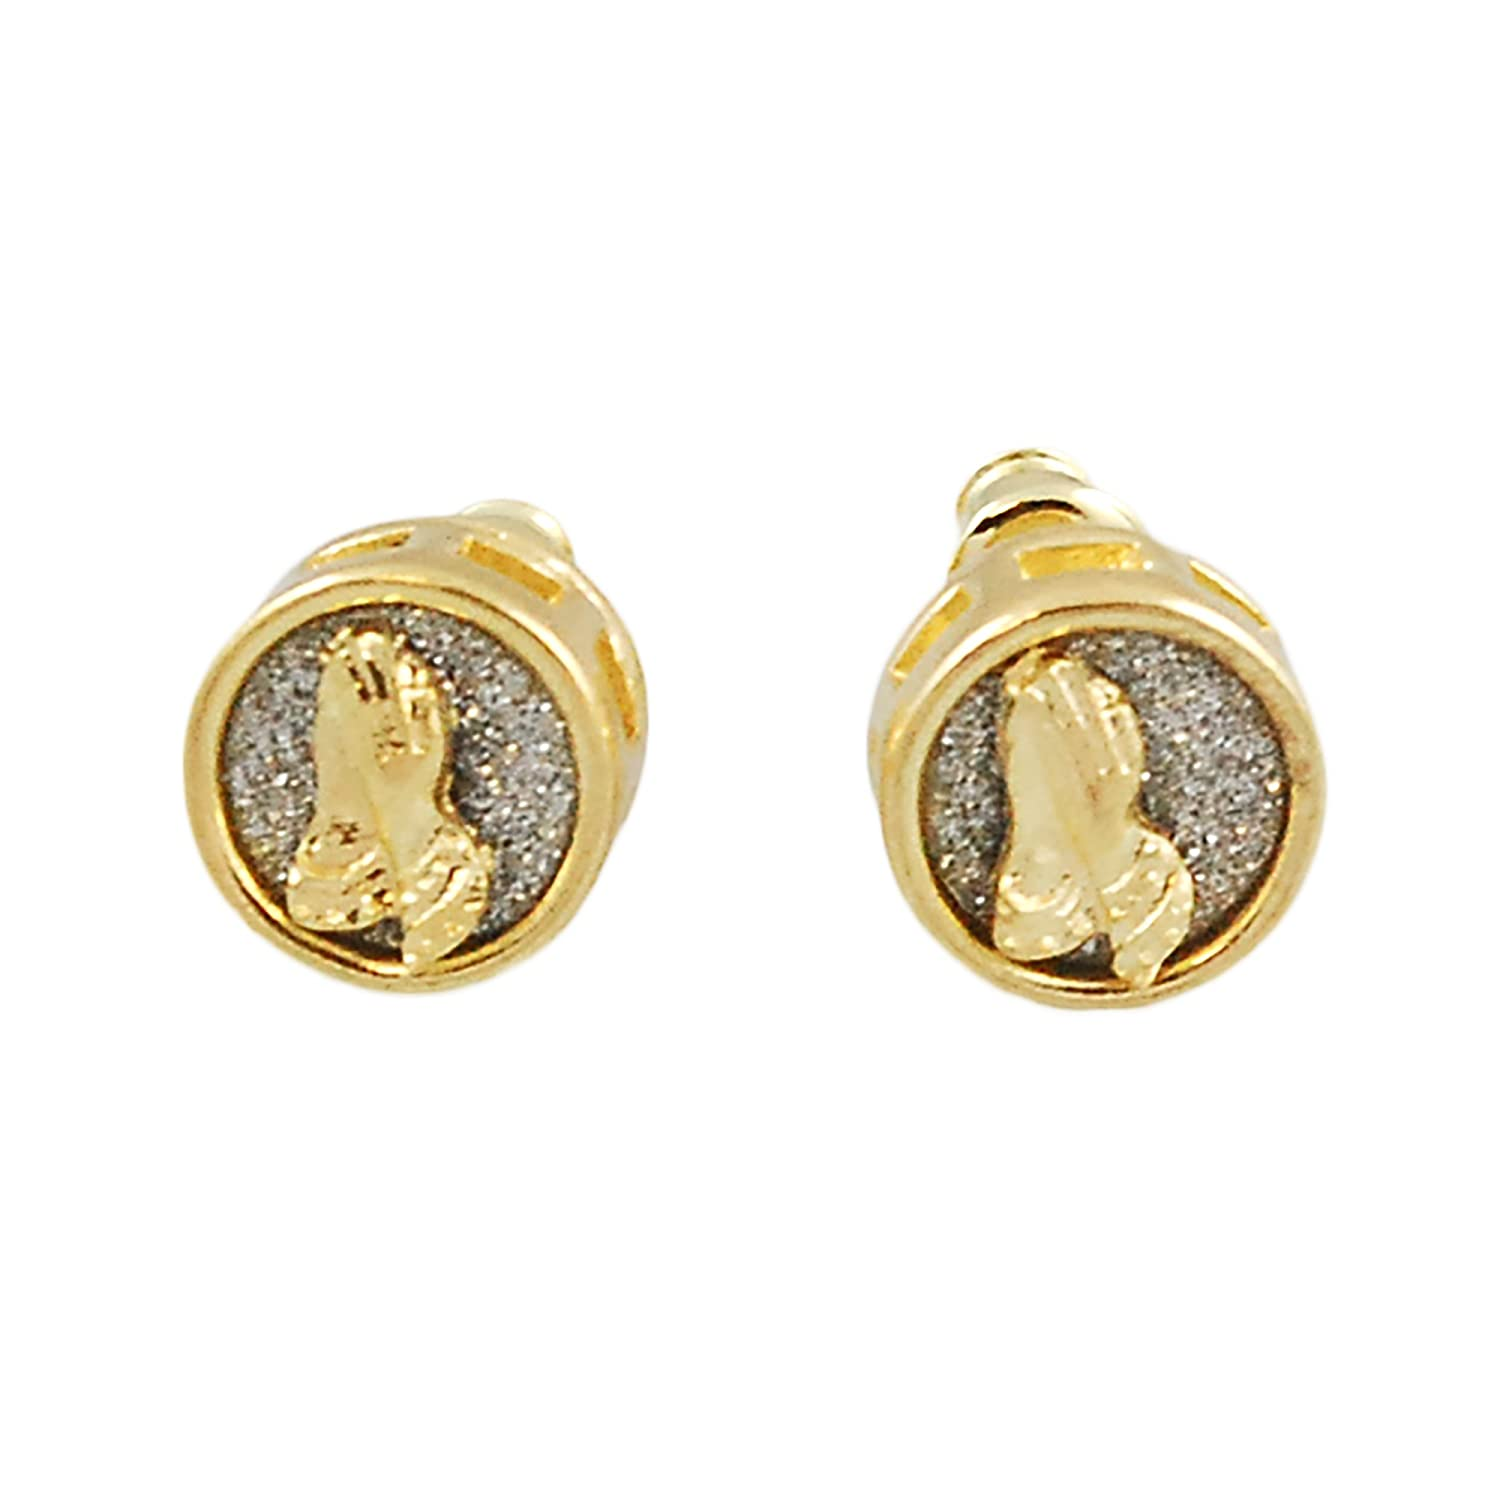 Mens Gold-Tone 8mm Iced Out Hip Hop Bling Stardust iPray Praying Hands Round Circle Earrings